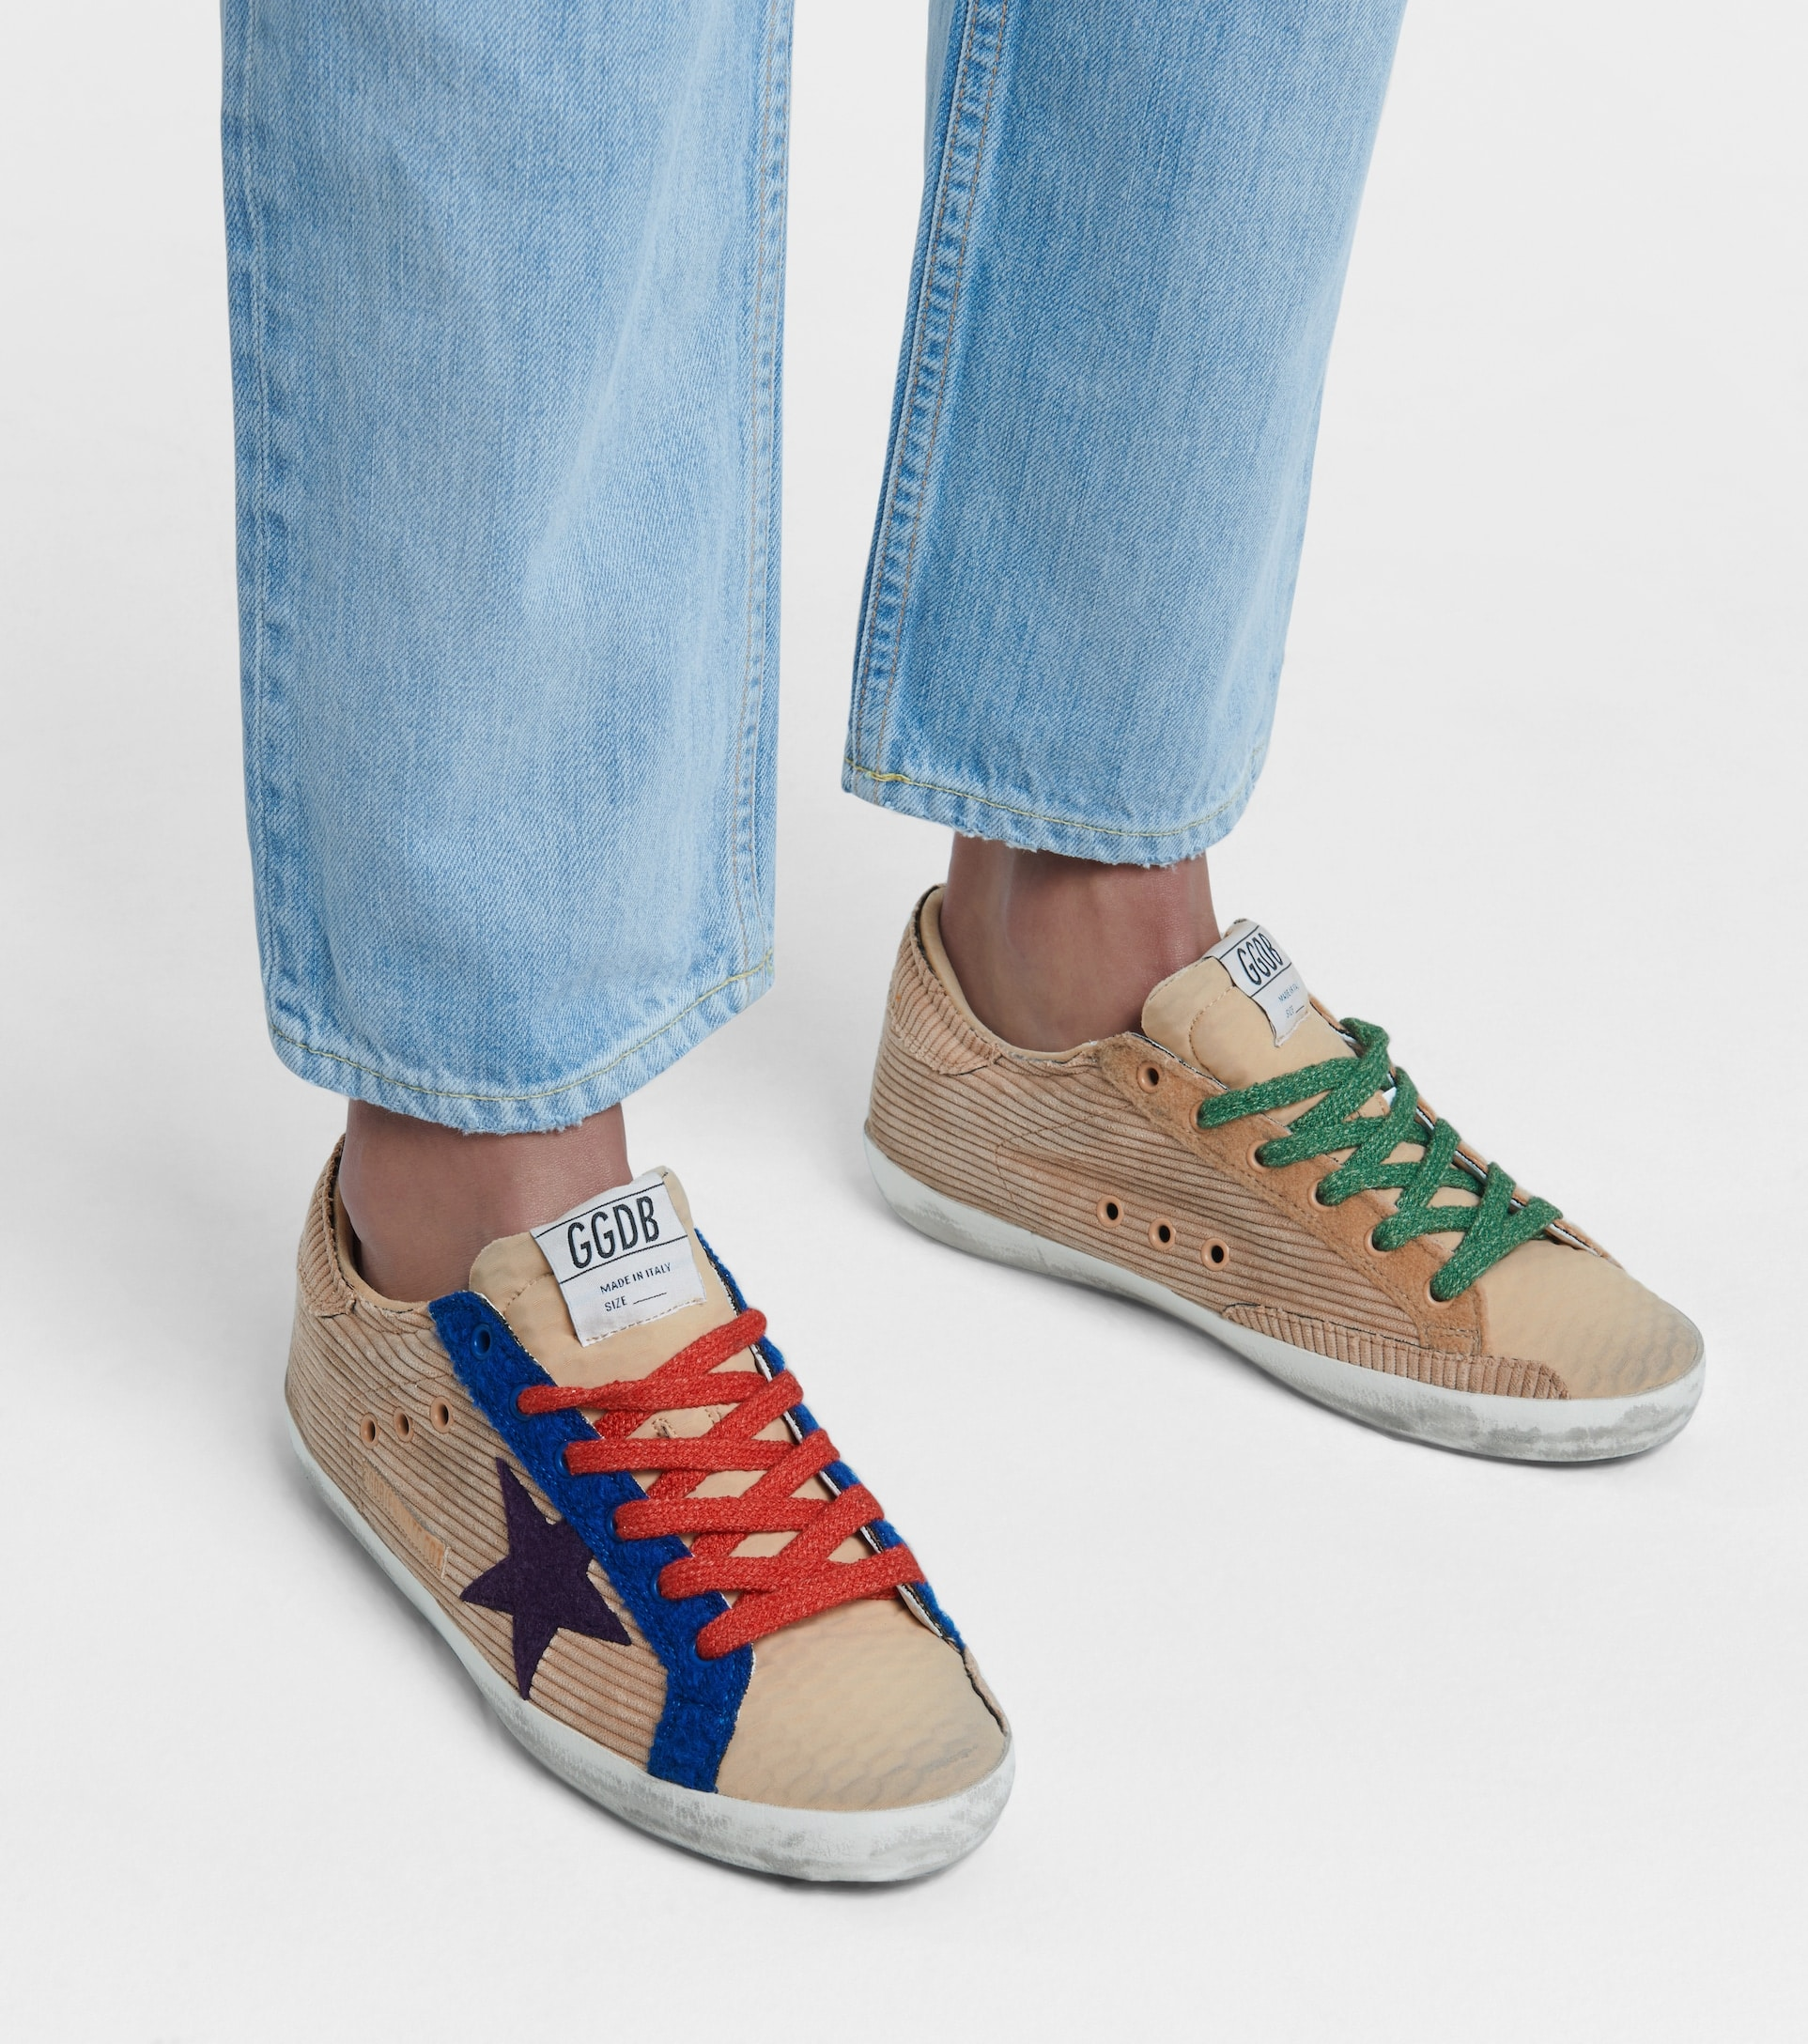 Golden goose limited edition sneakers